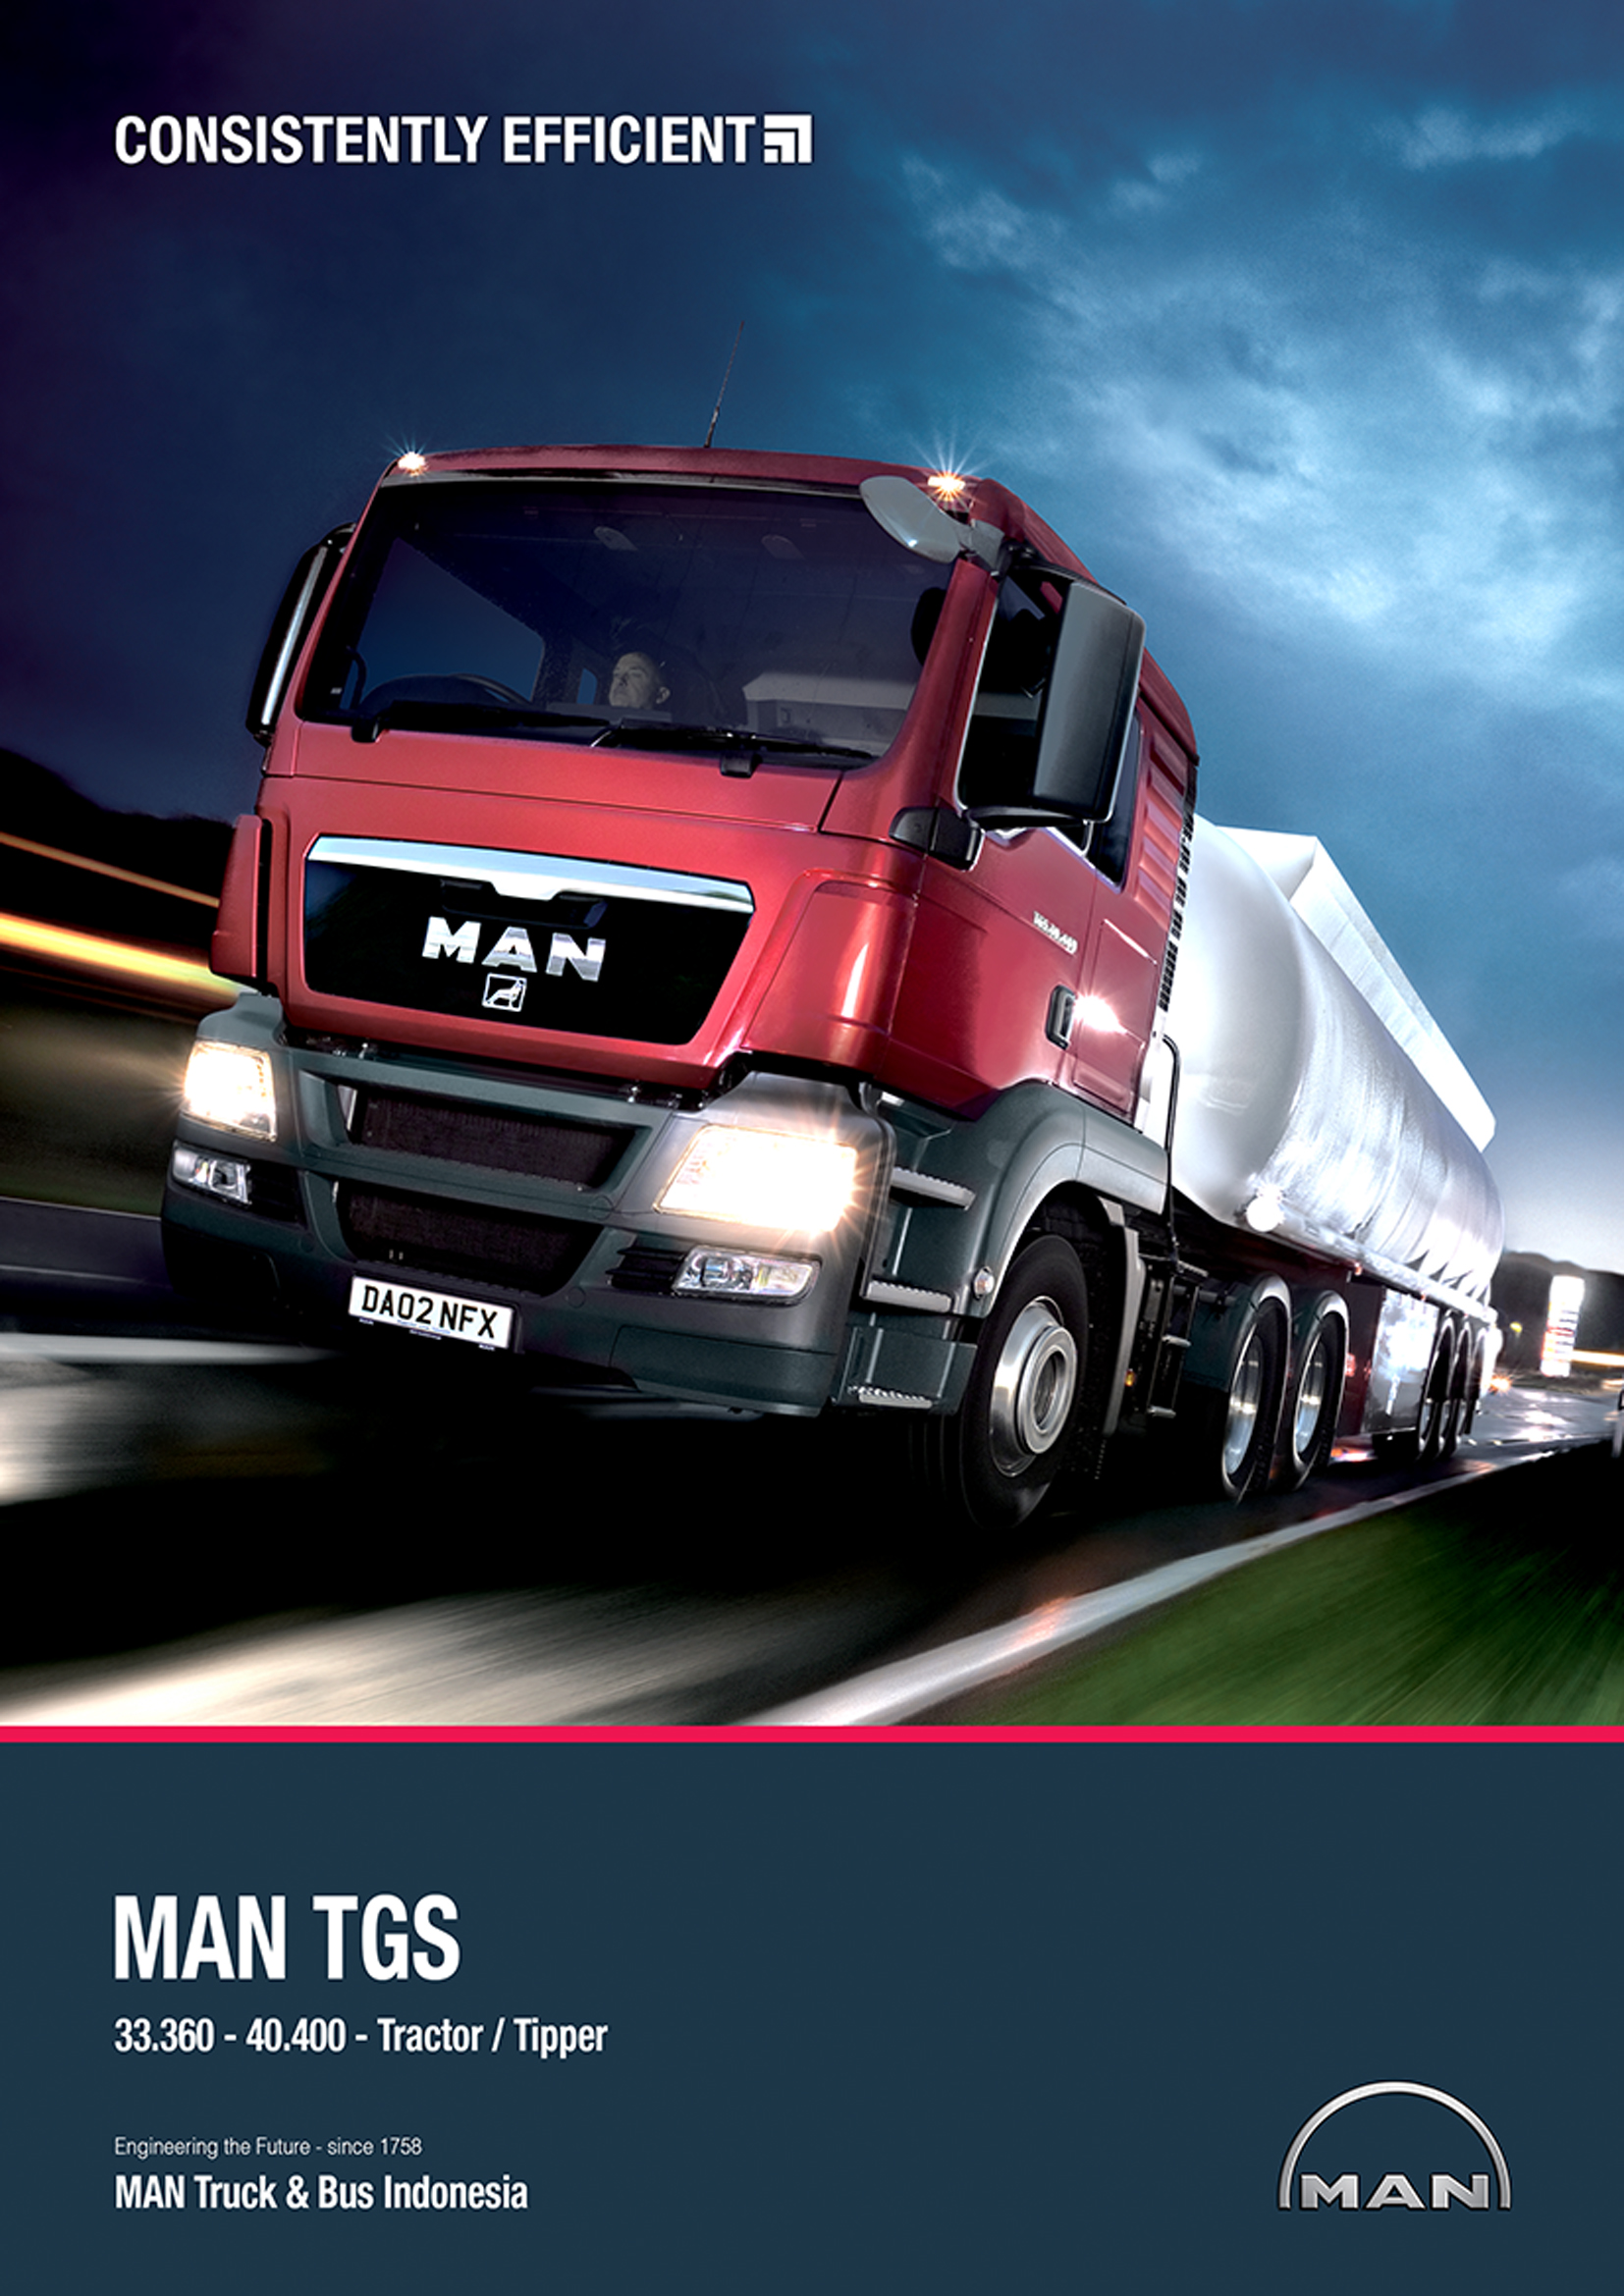 MAN TGS Tractor